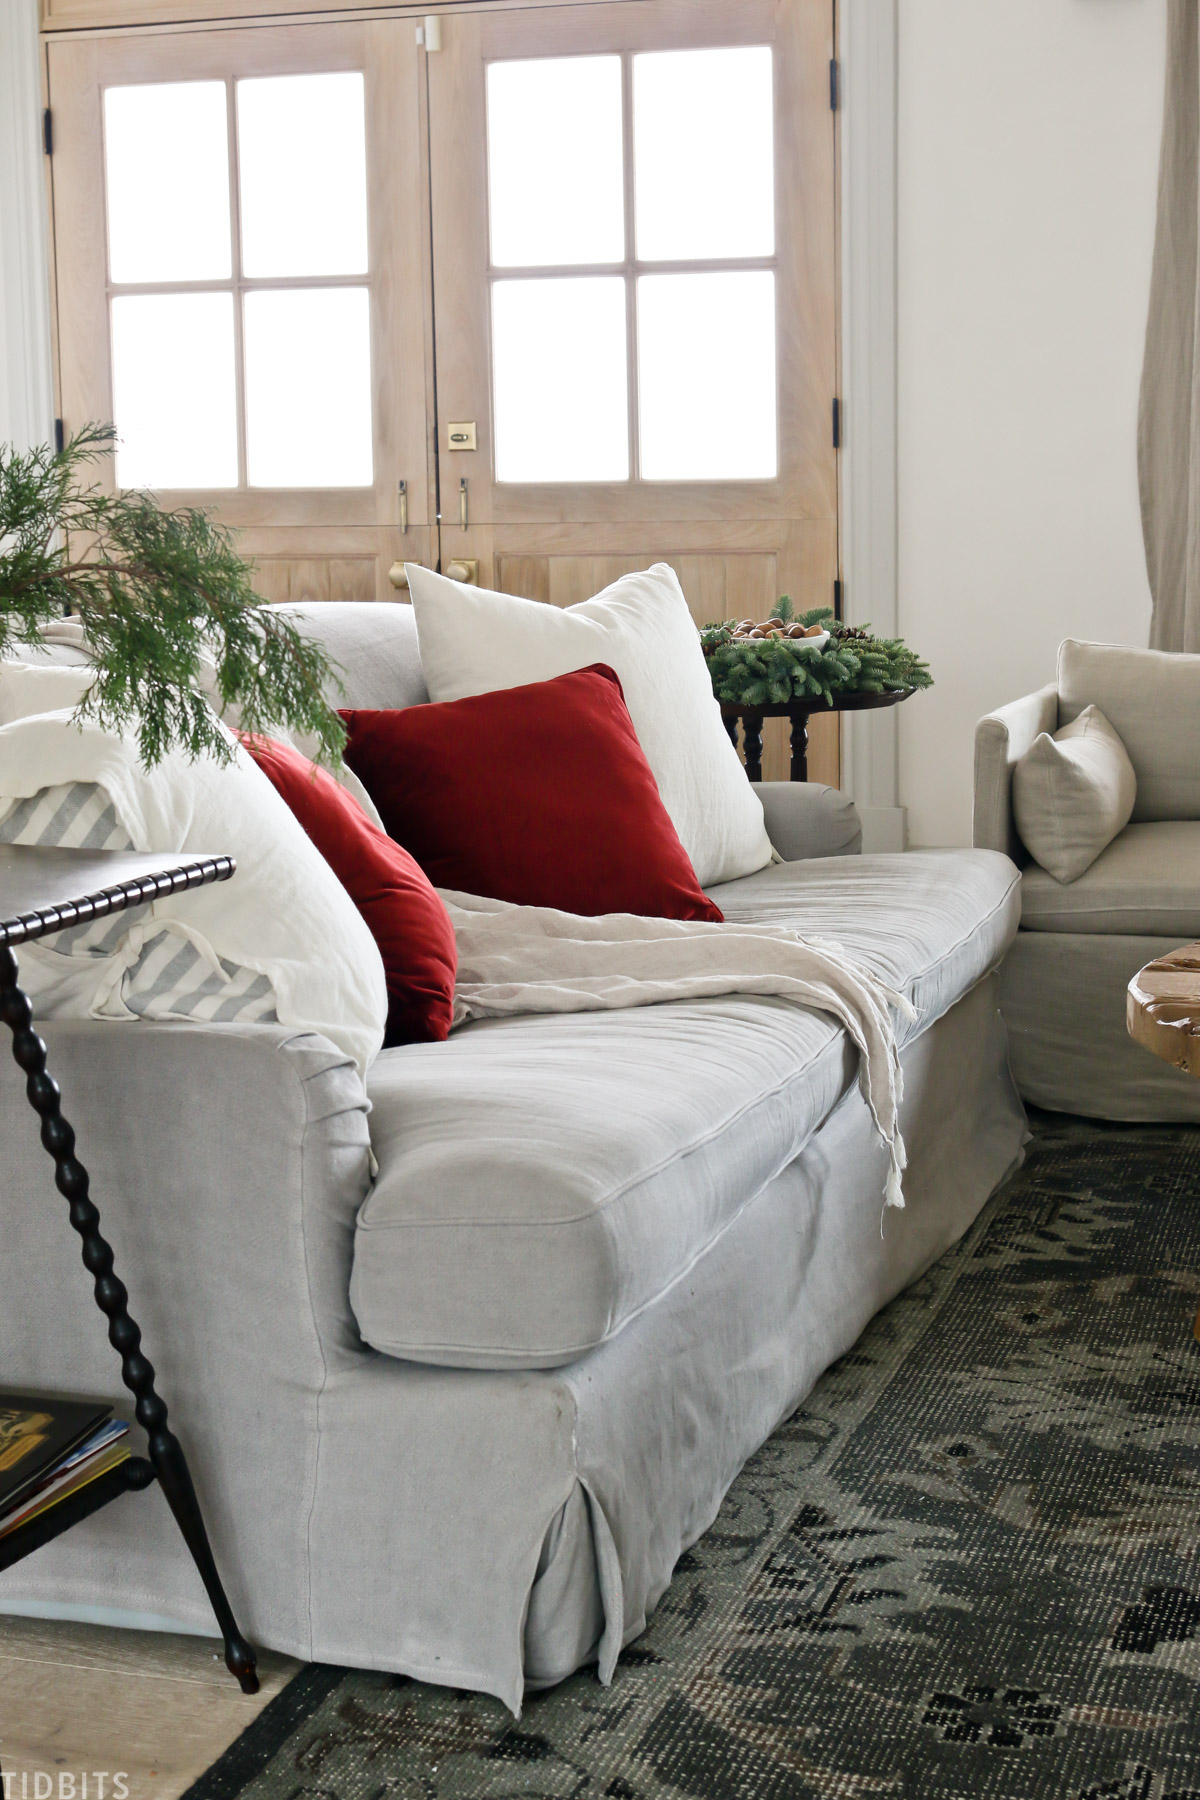 couch with red and white decorative pillows and throw blanket